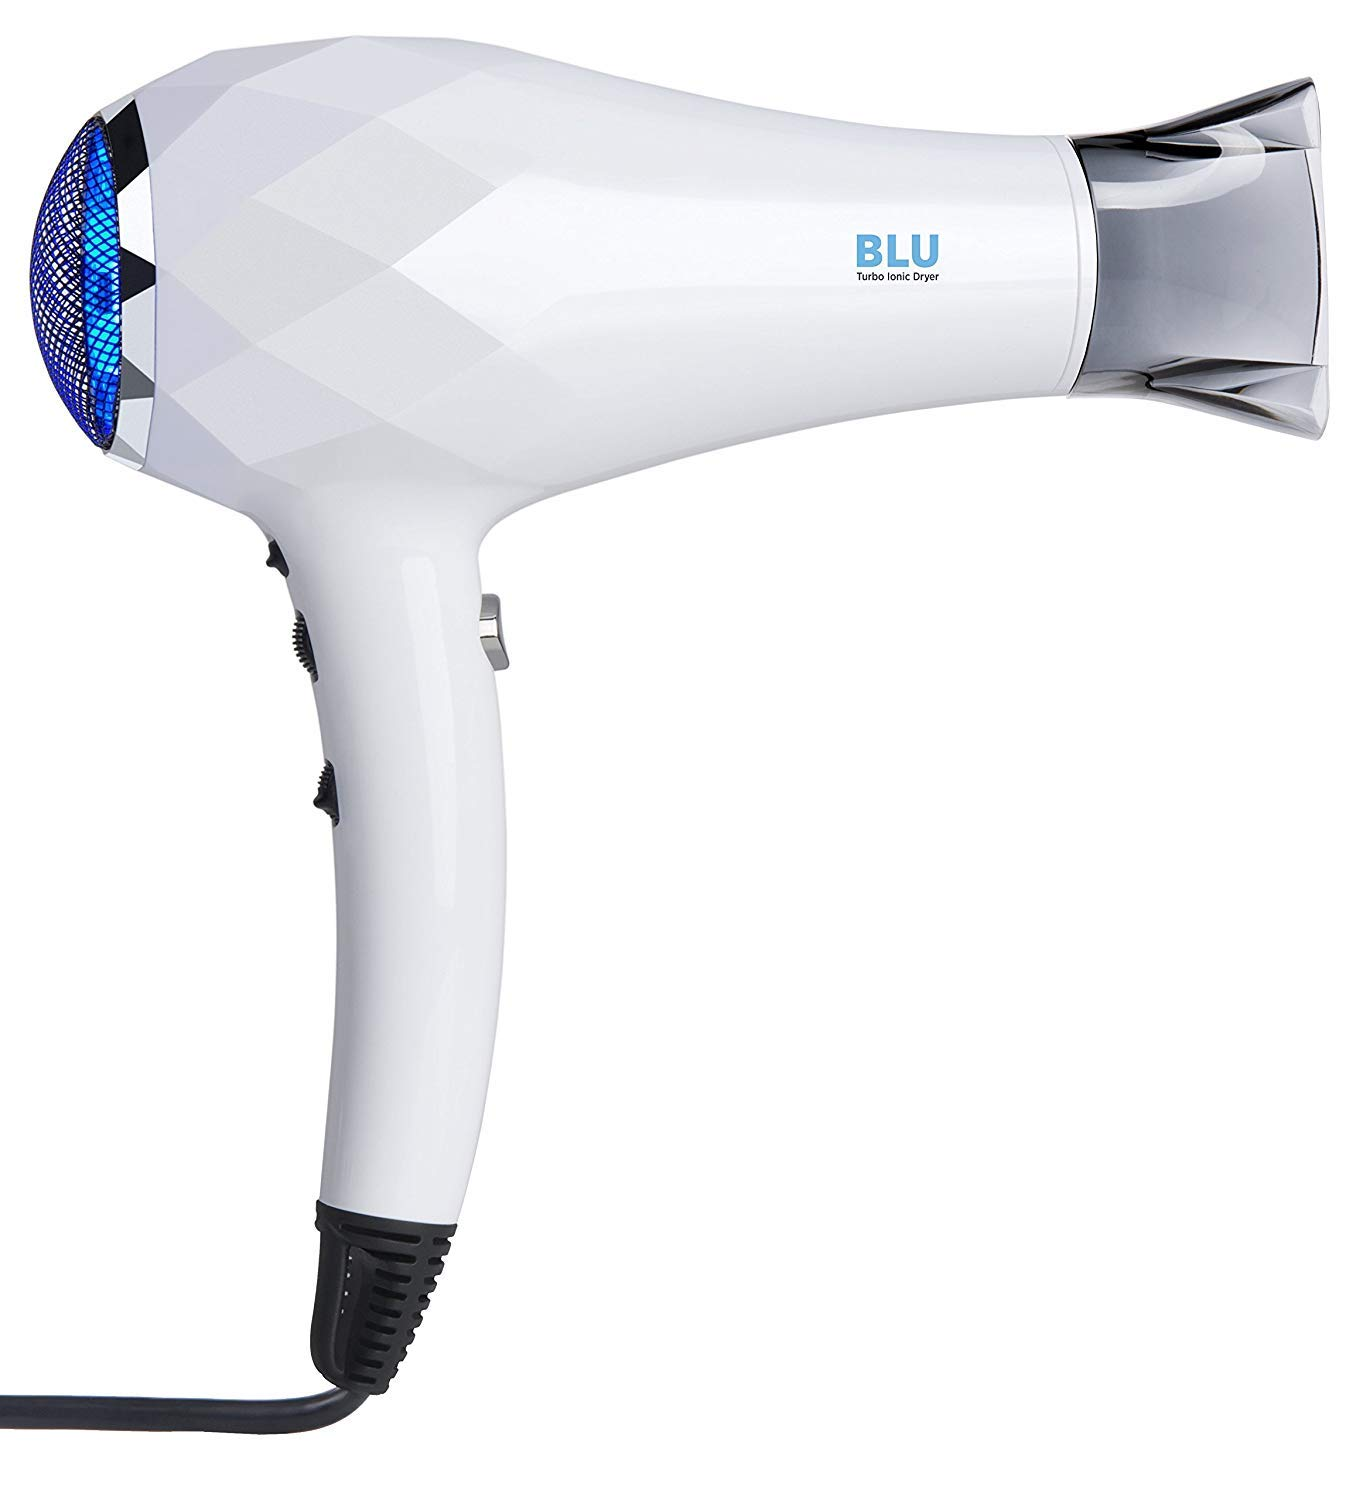 InStyler Turbo - best blow dryer hair dryers